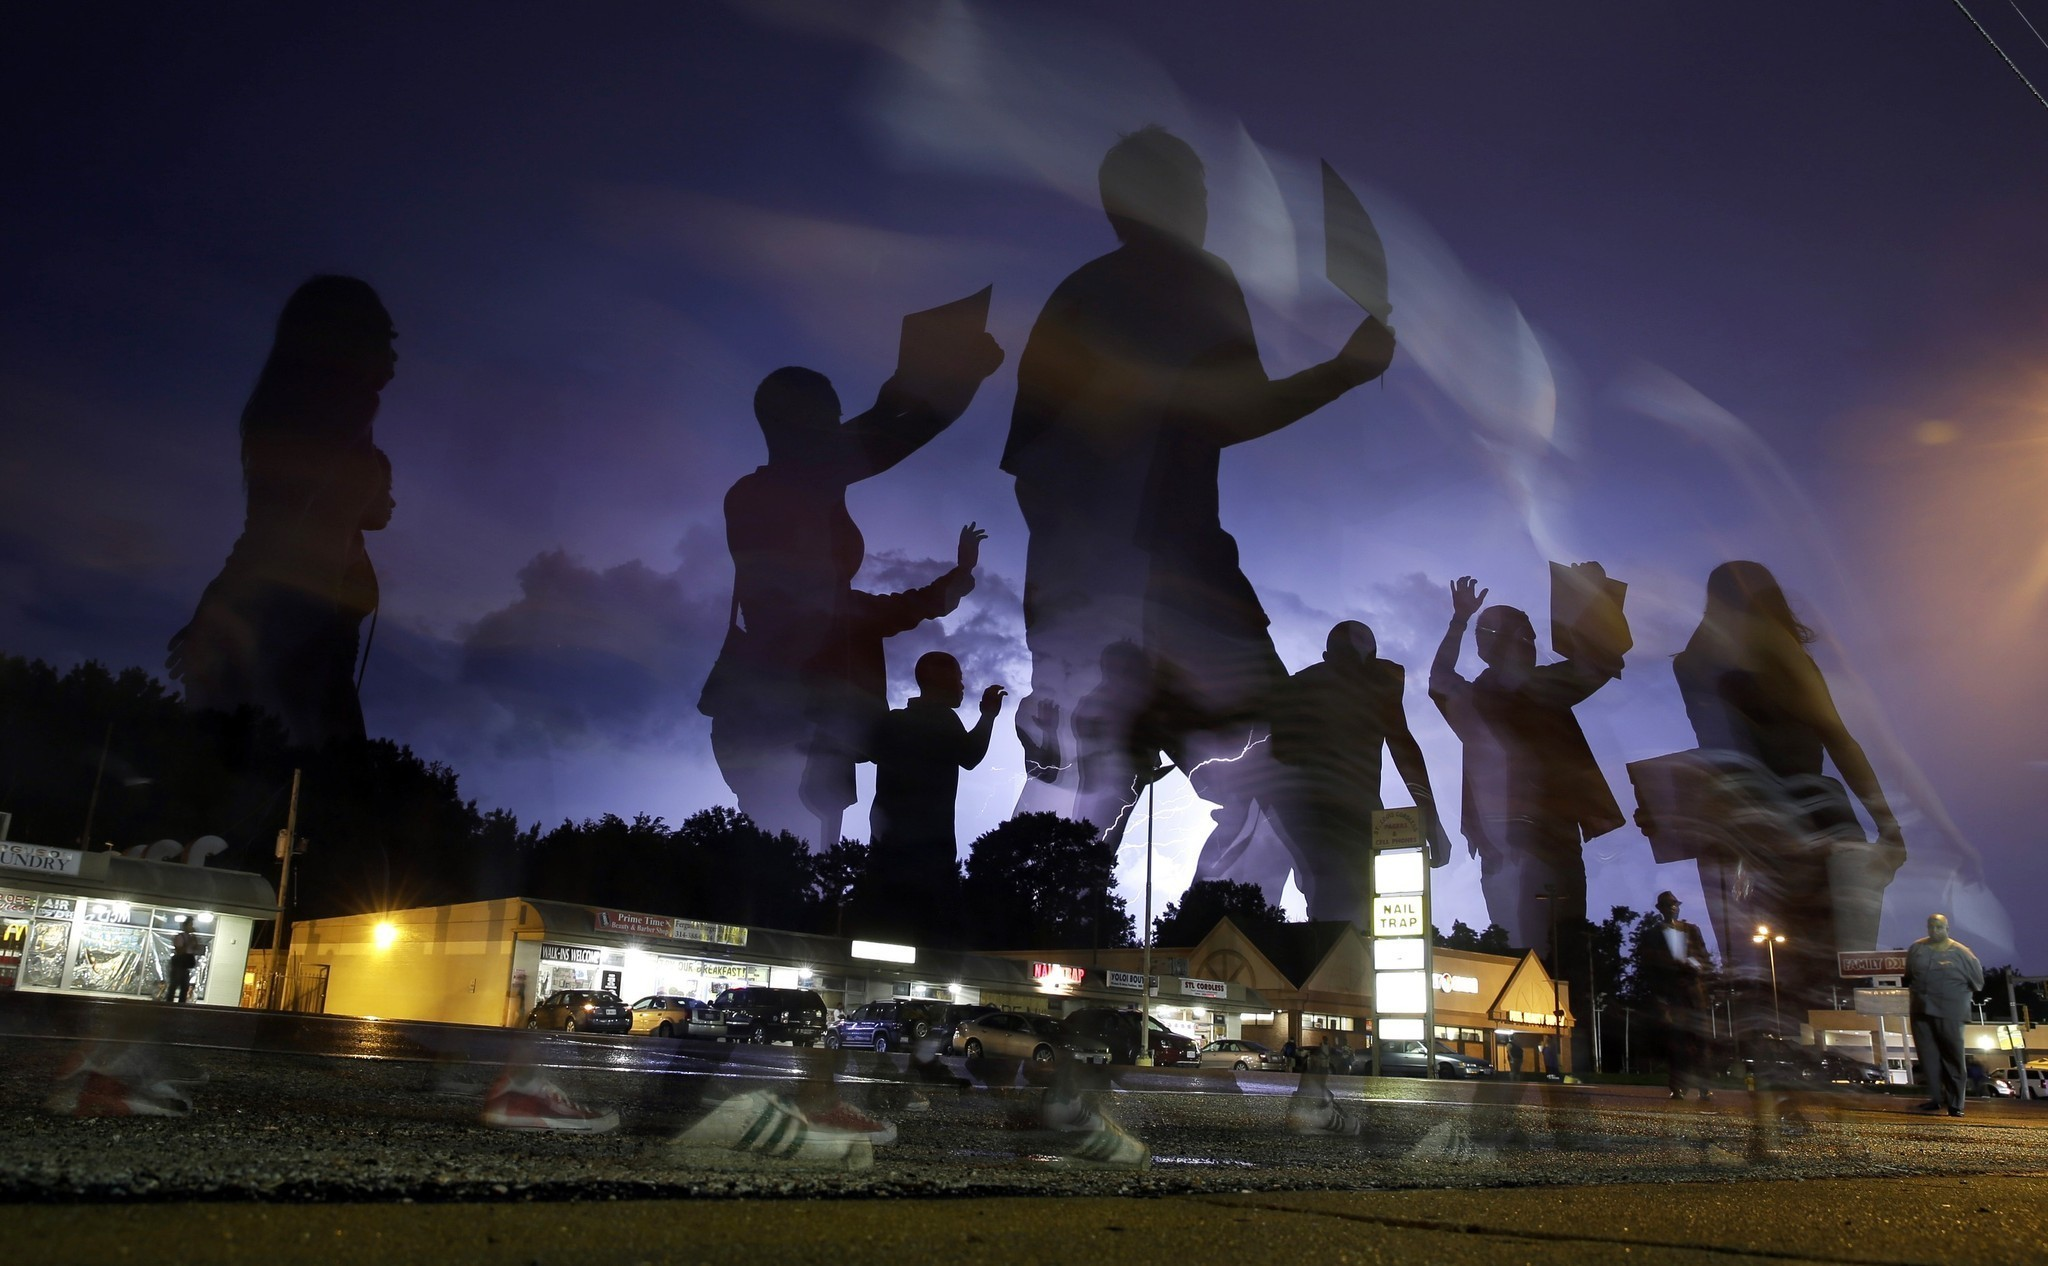 Missouri residents sue police over use of force in Ferguson protests